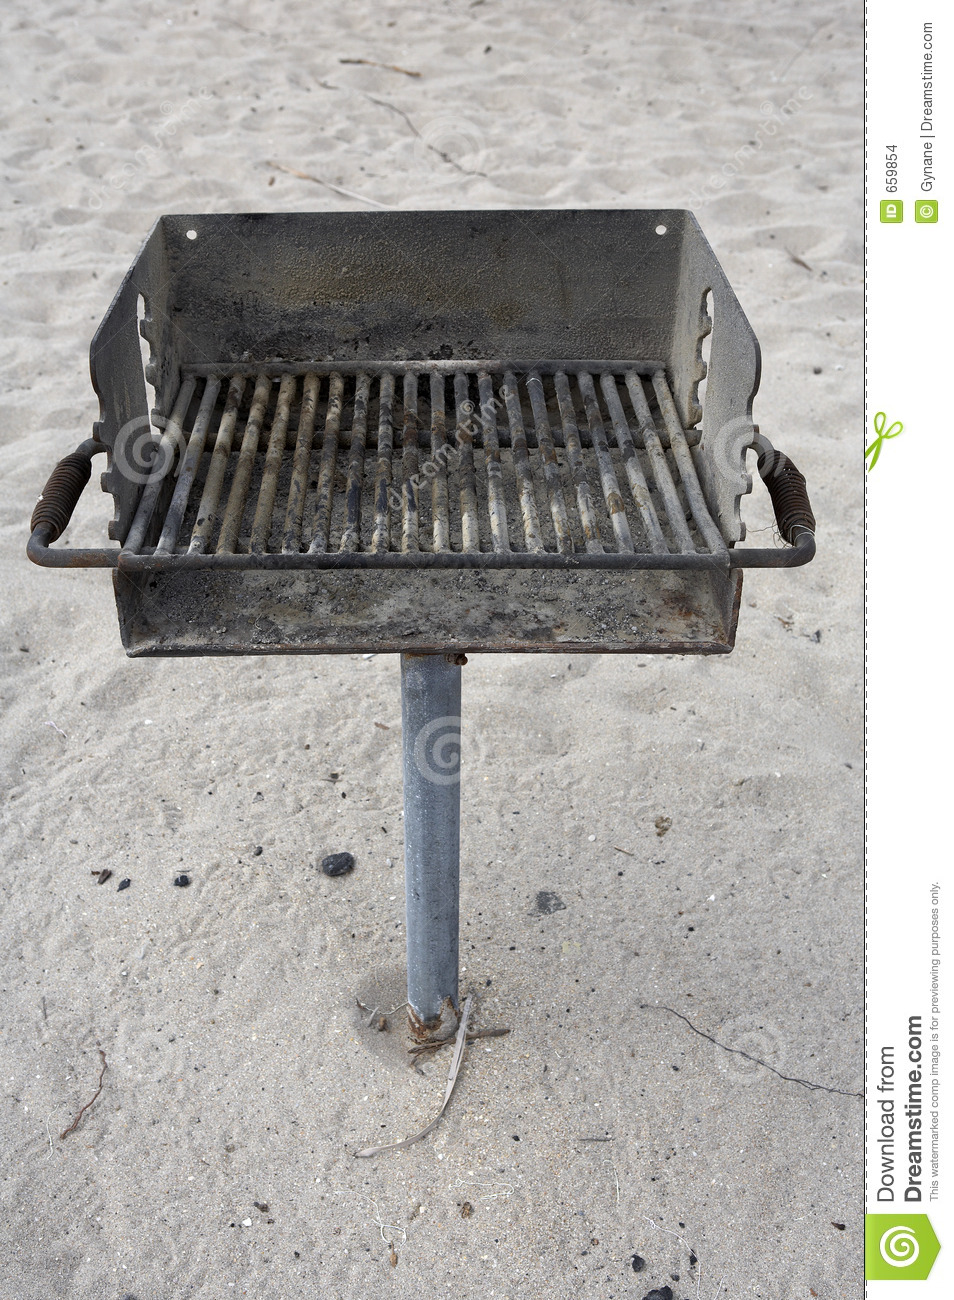 This tiny BBQ grill, super convenient for your taking to the beach, on a camping trip or anywhere you neavrestpa.ml this wonderful barbecue pretty much anywhere when going out with your family or friends.